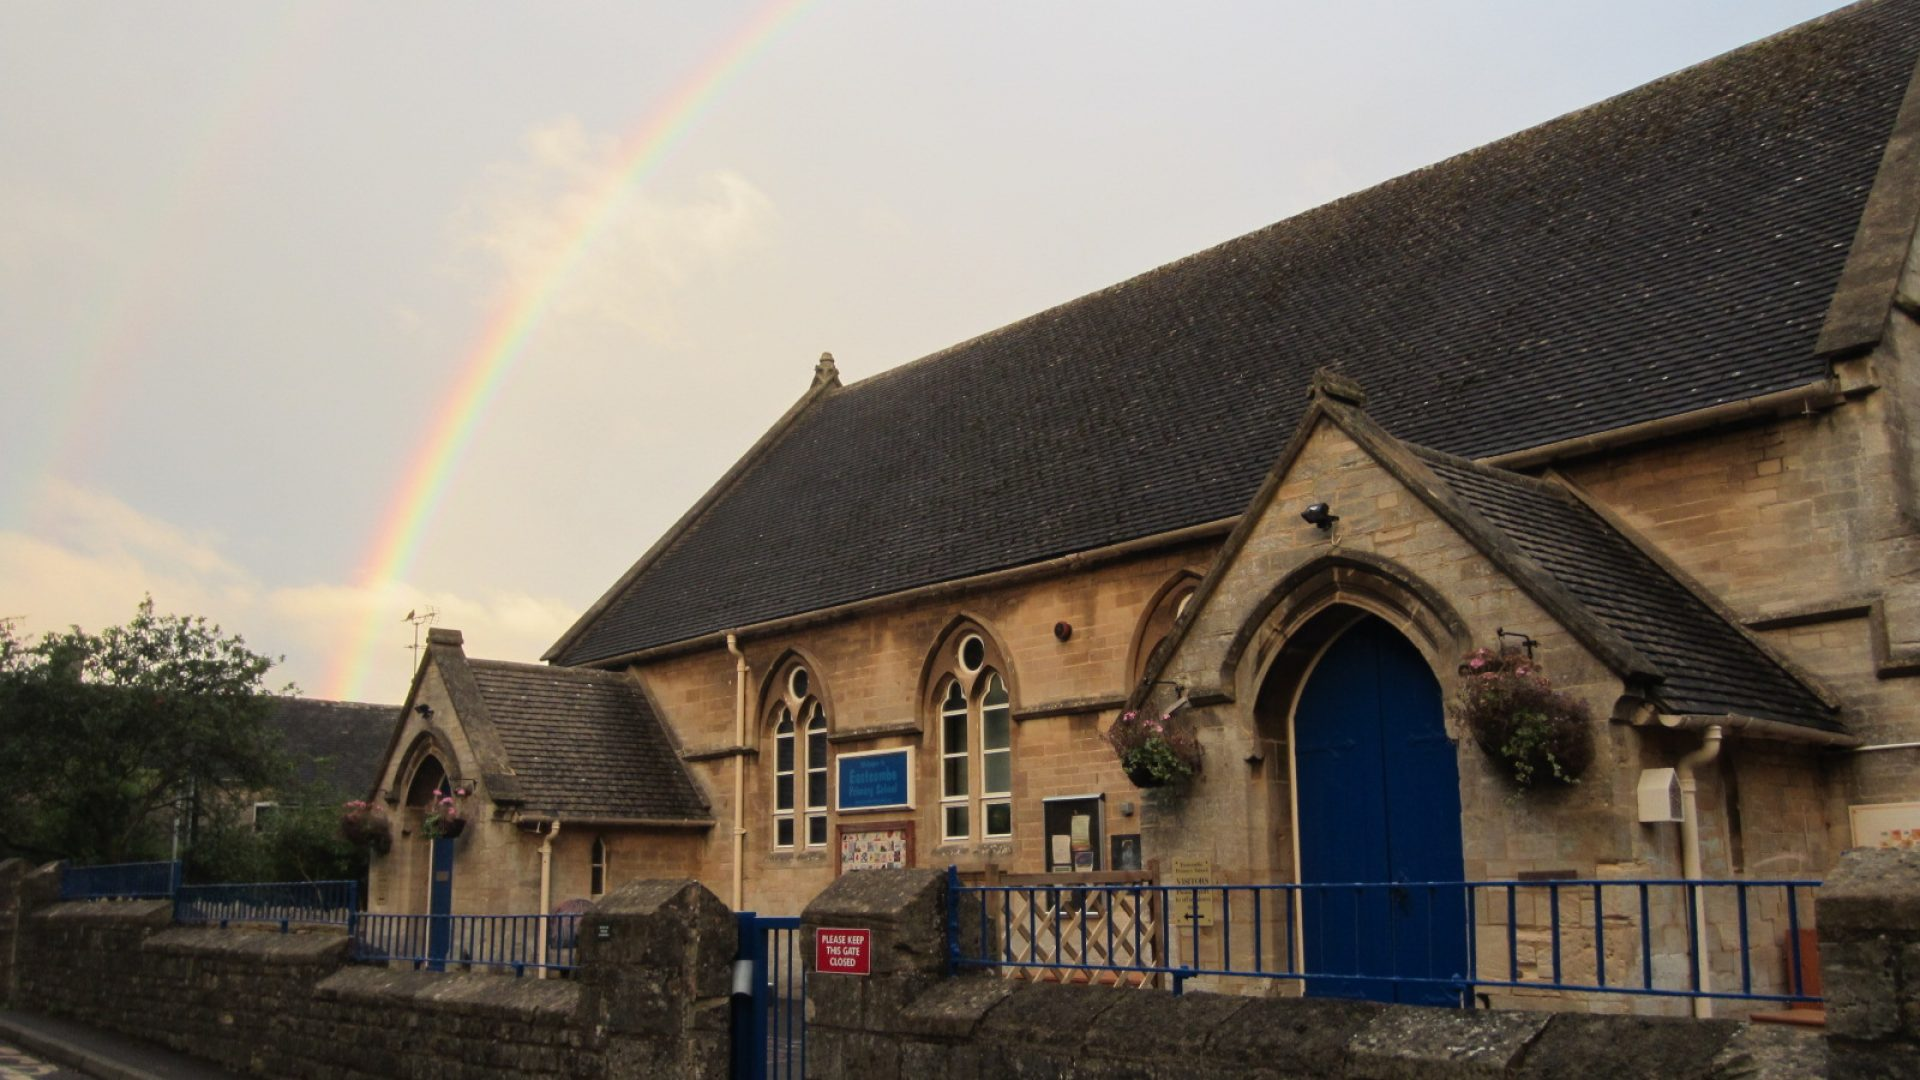 Eastcombe Primary School